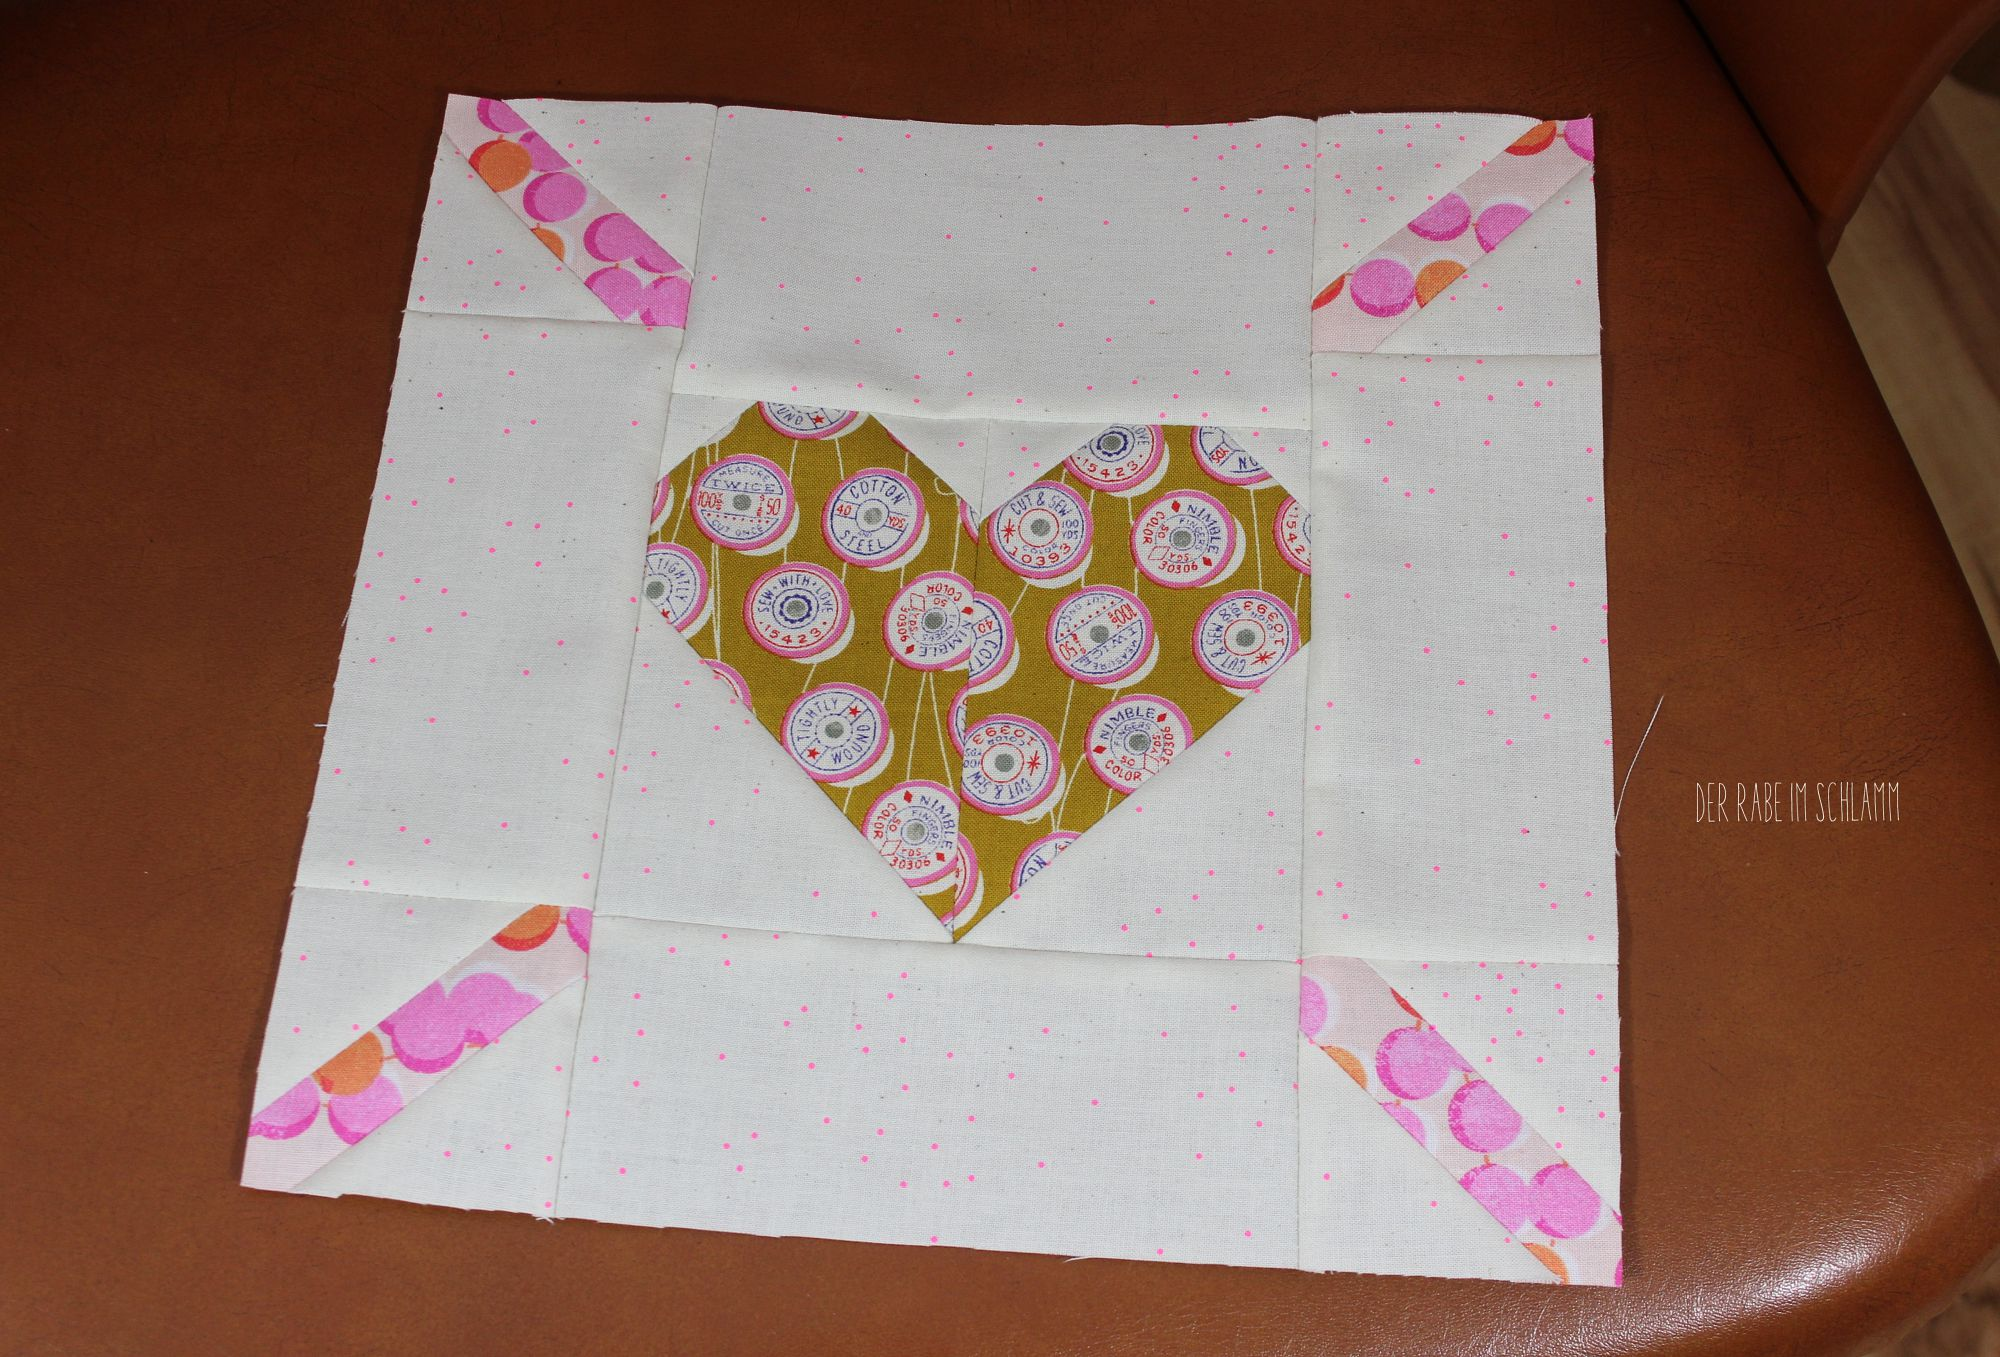 Der Rabe im Schlamm, Love is all around, Quilt, Quiltblock, Herz, Nähen